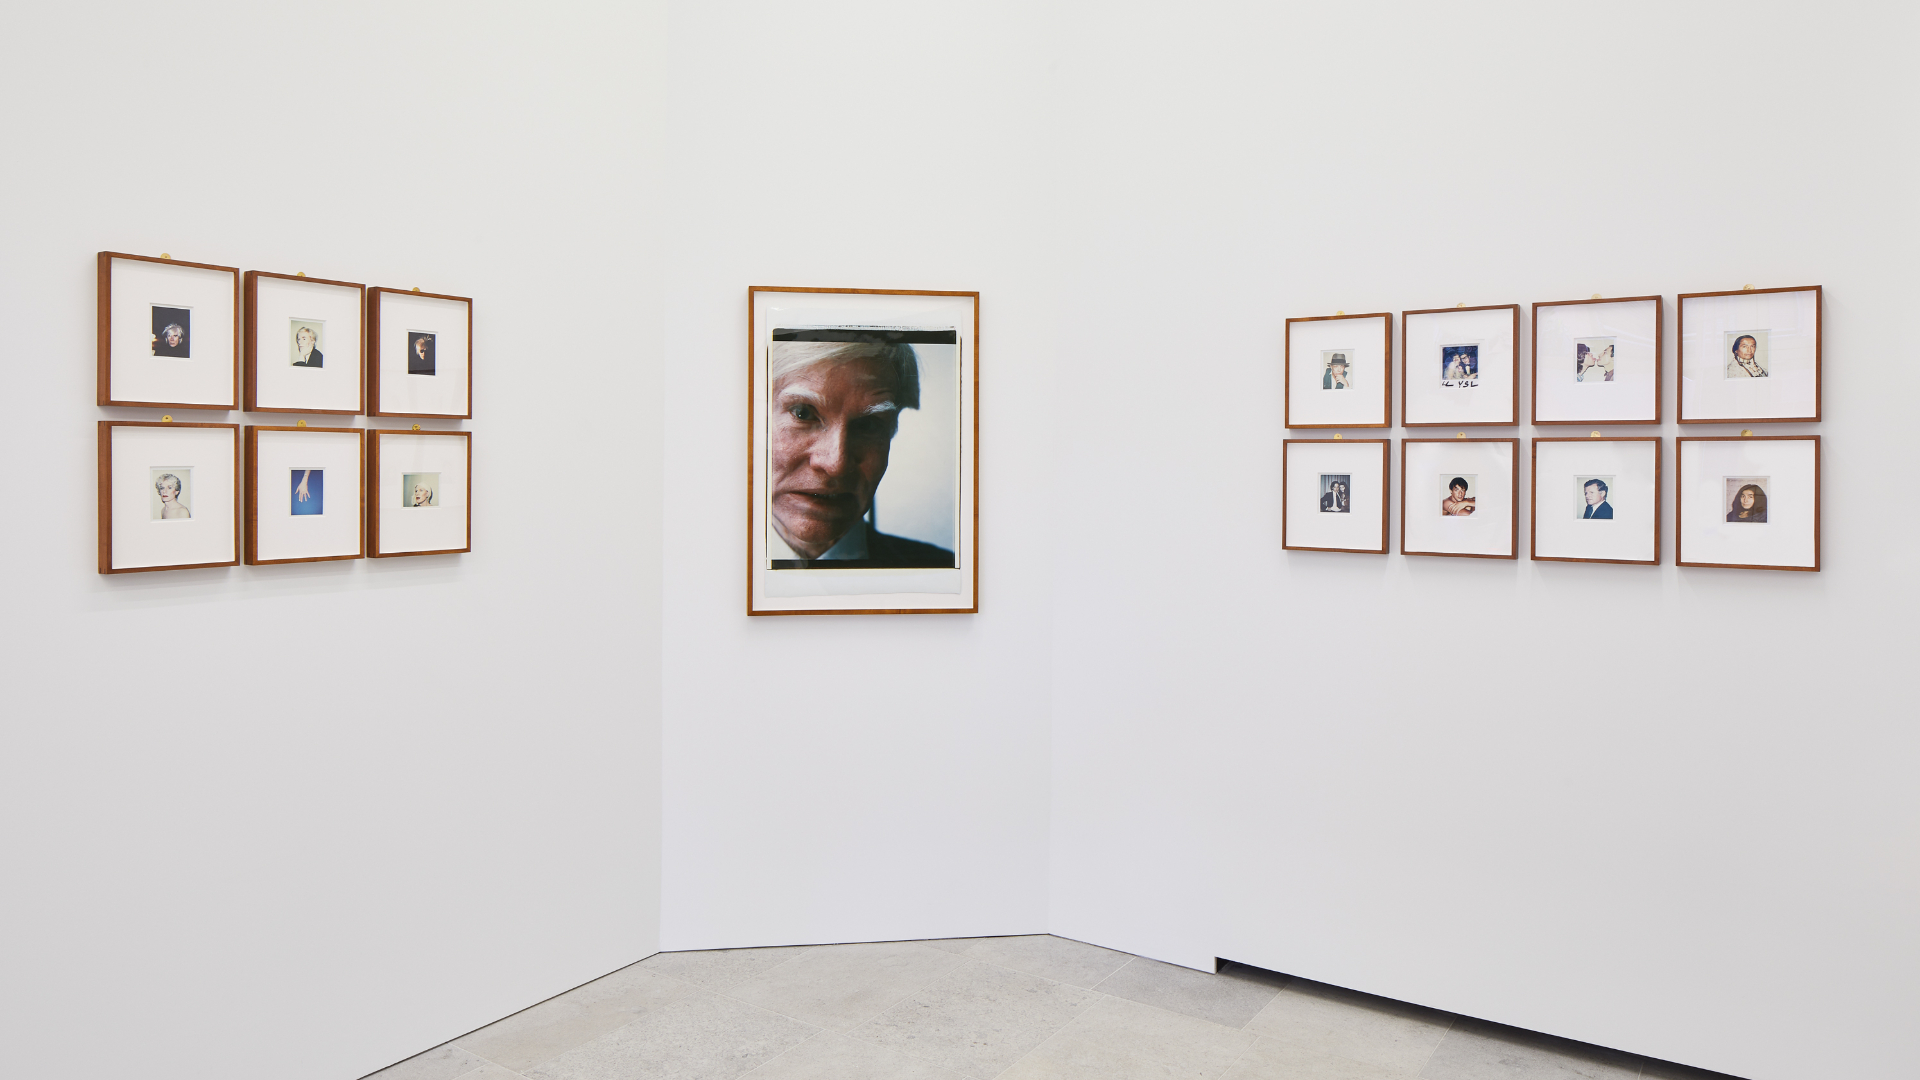 A collection of framed Polaroid photographs on a white wall, including a large self-portrait, by Andy Warhol as part of Andy Warhol Polaroid Pictures exhibition at Bastian